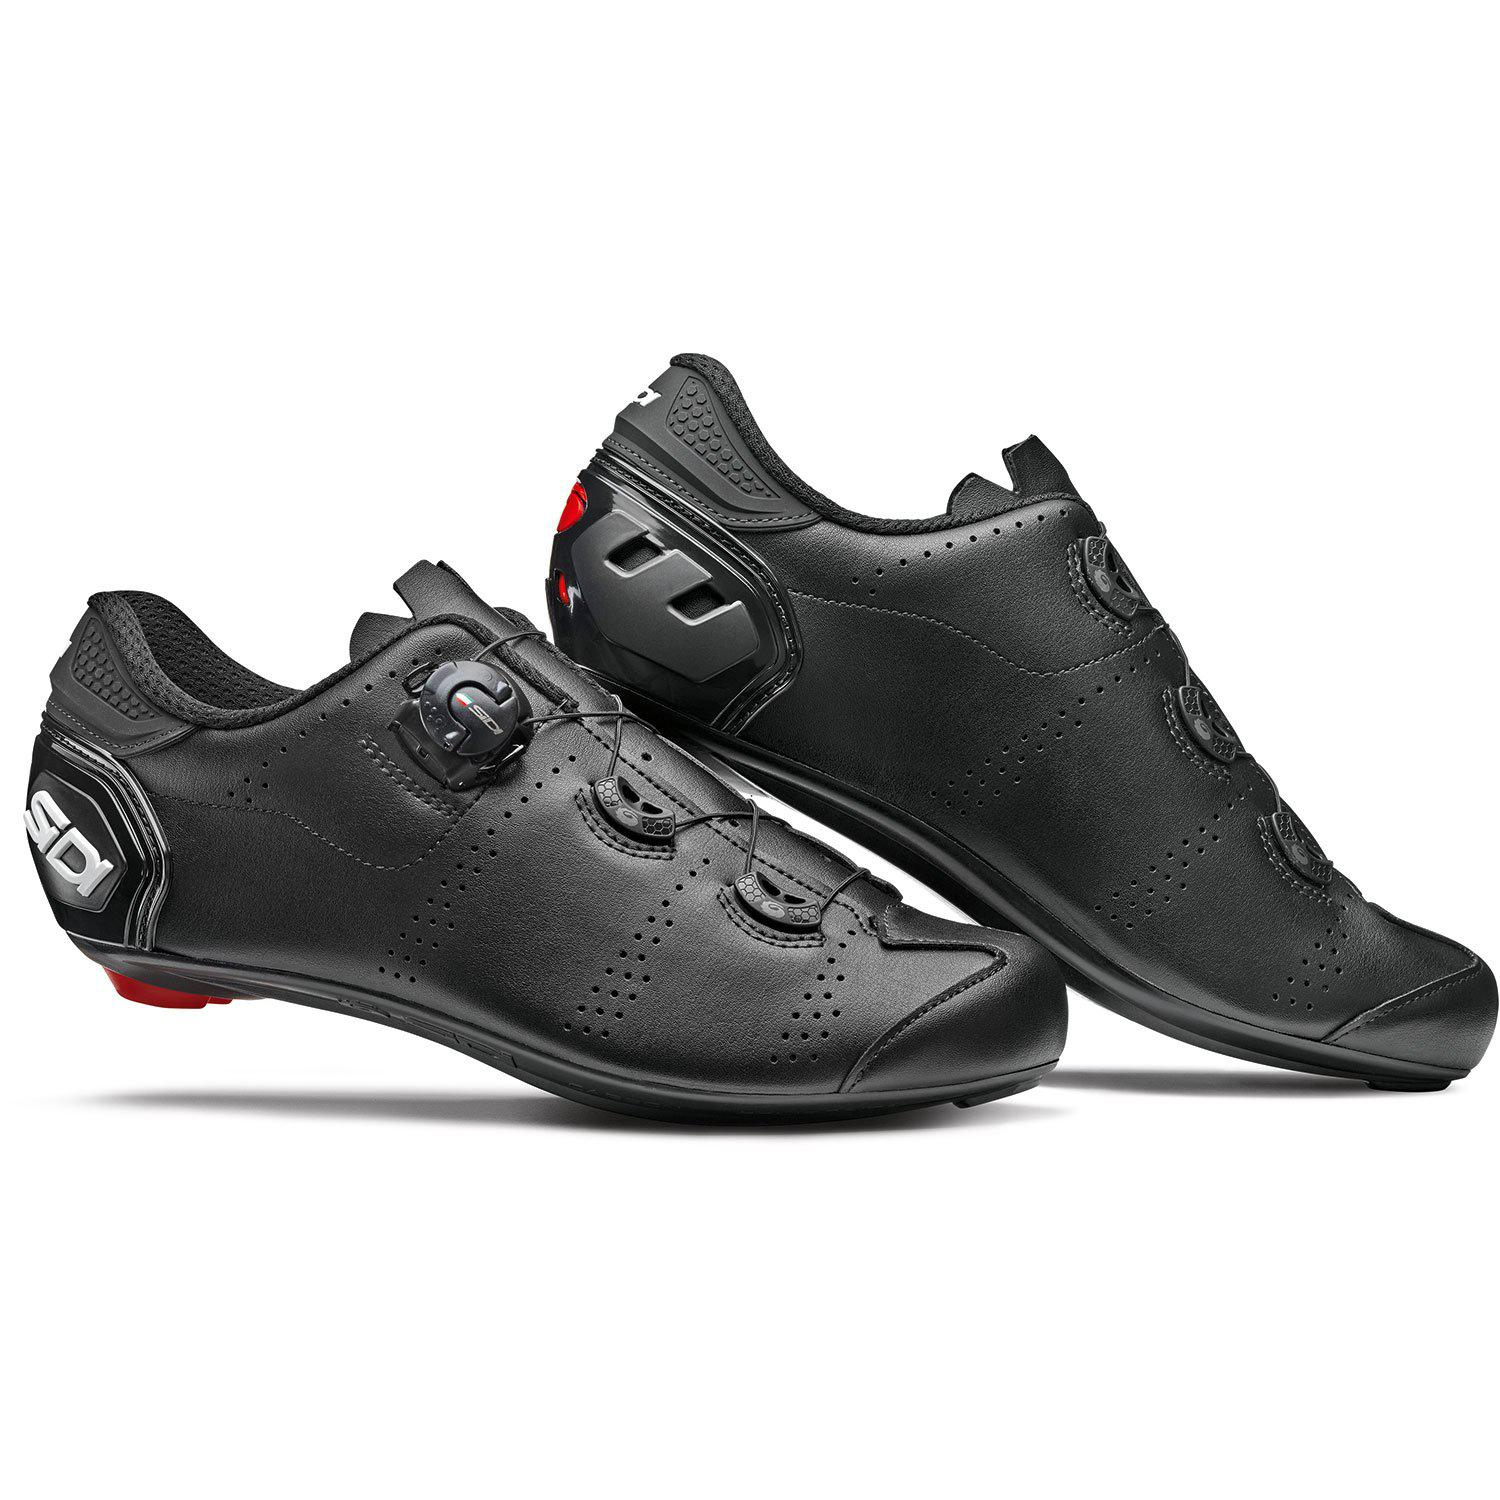 Sidi-Sidi Fast Road Shoes-Black/Black-38-SIFASTNENE38-saddleback-elite-performance-cycling